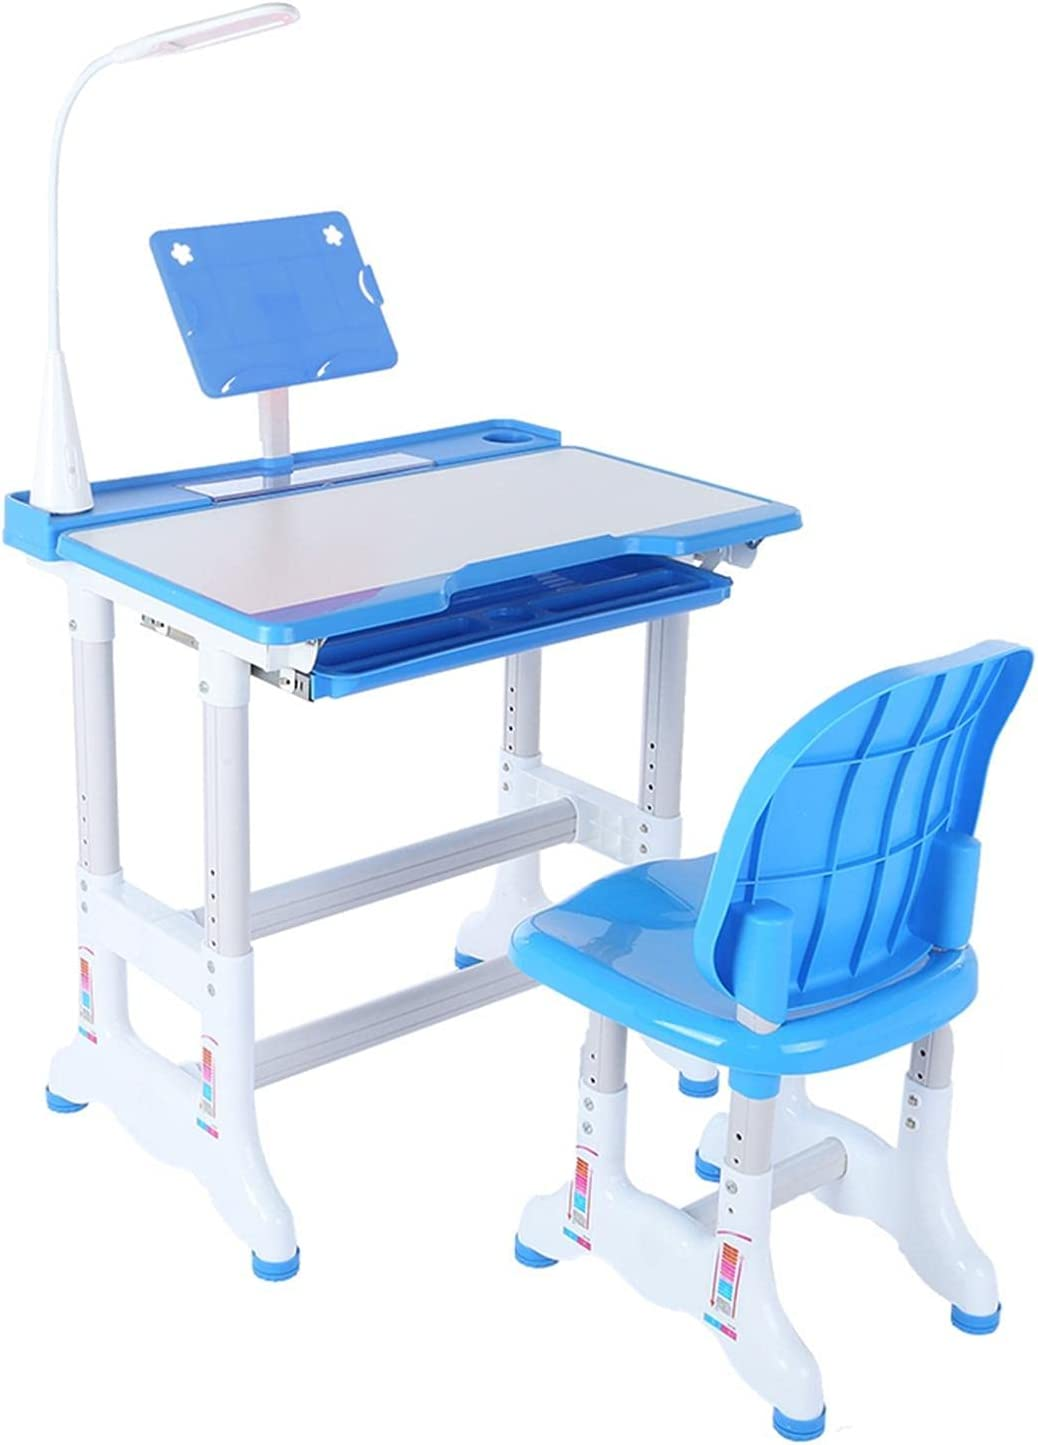 FartPeach Small Directly managed store Desk with Drawers Adjustable Years - Over item handling ☆ 8-12 Height